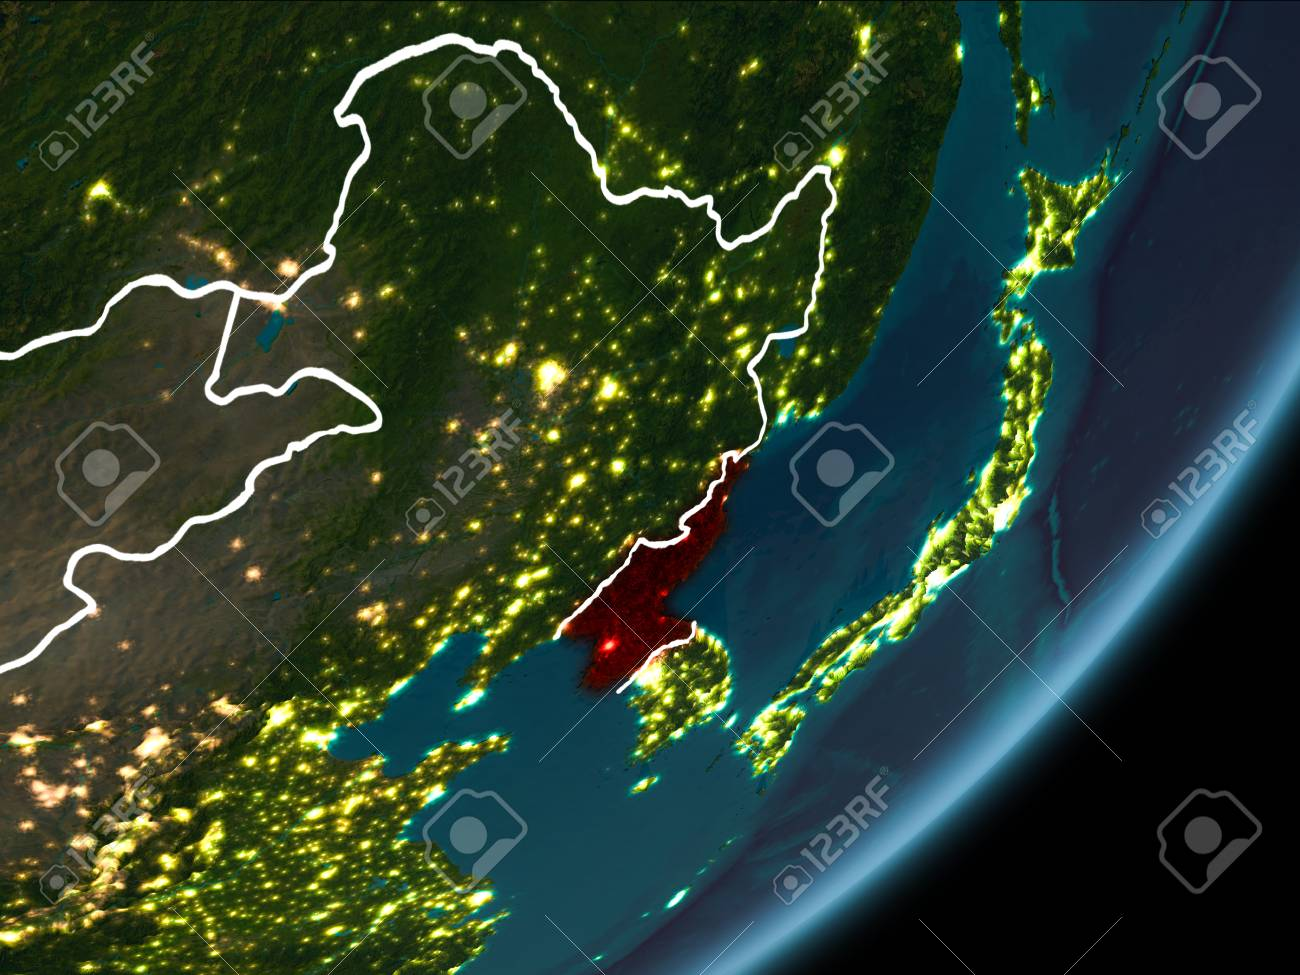 North korea as seen from earths orbit on planet earth at night foto de archivo north korea as seen from earths orbit on planet earth at night highlighted in red with visible borders and city lights gumiabroncs Choice Image